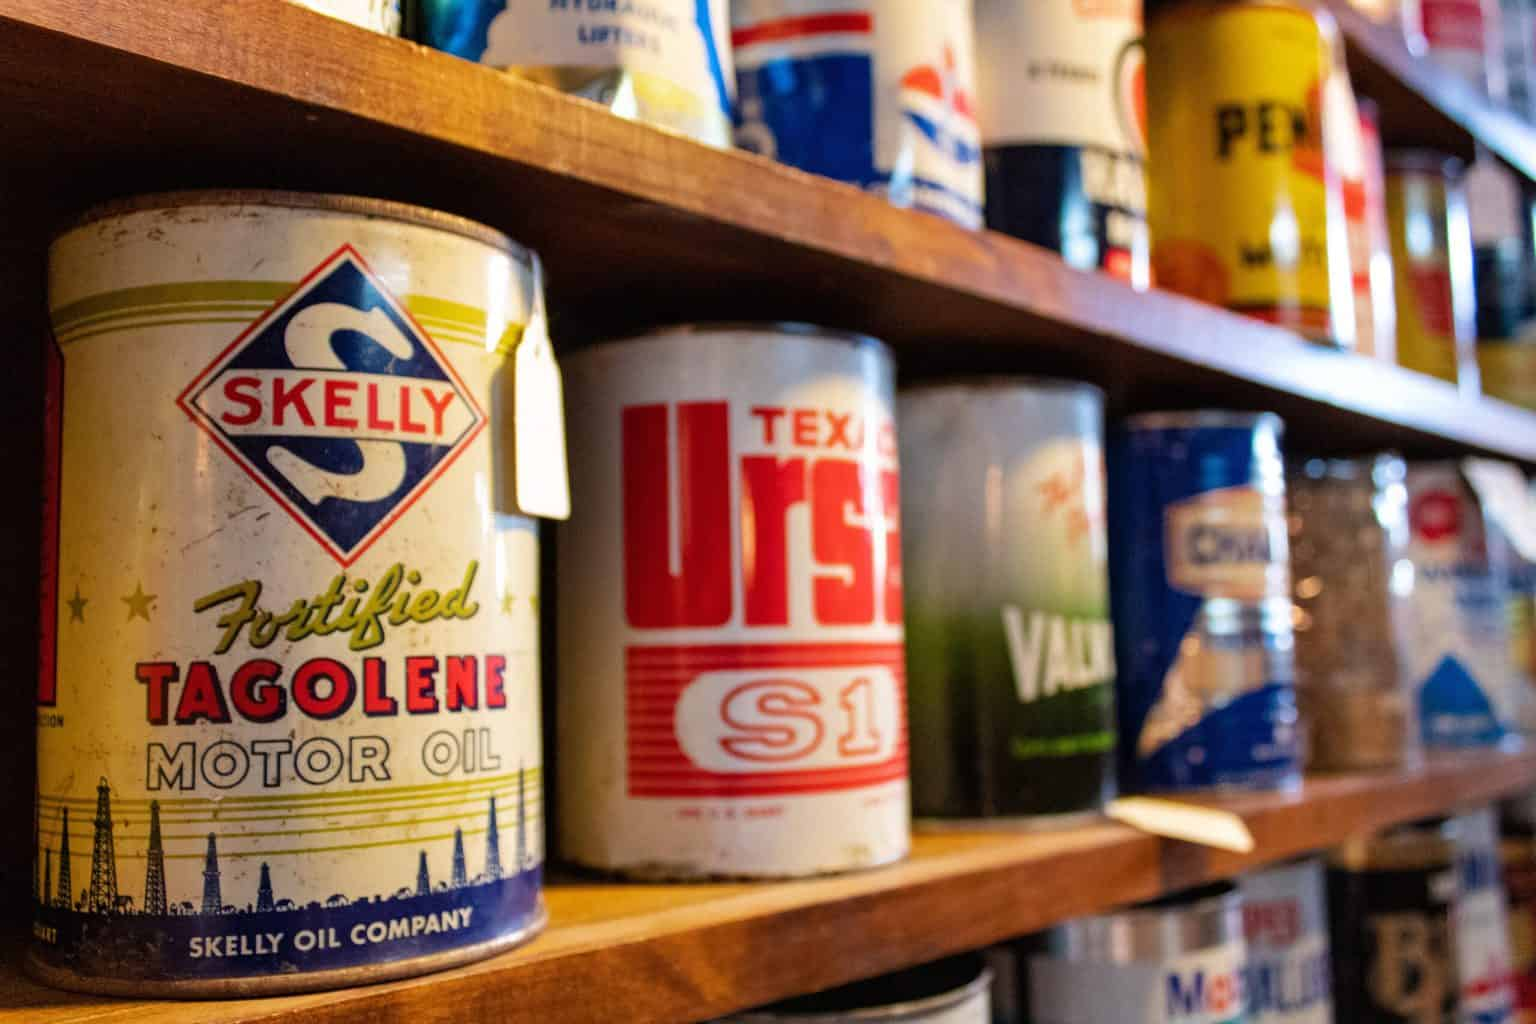 Oil cans stacked on a shelf